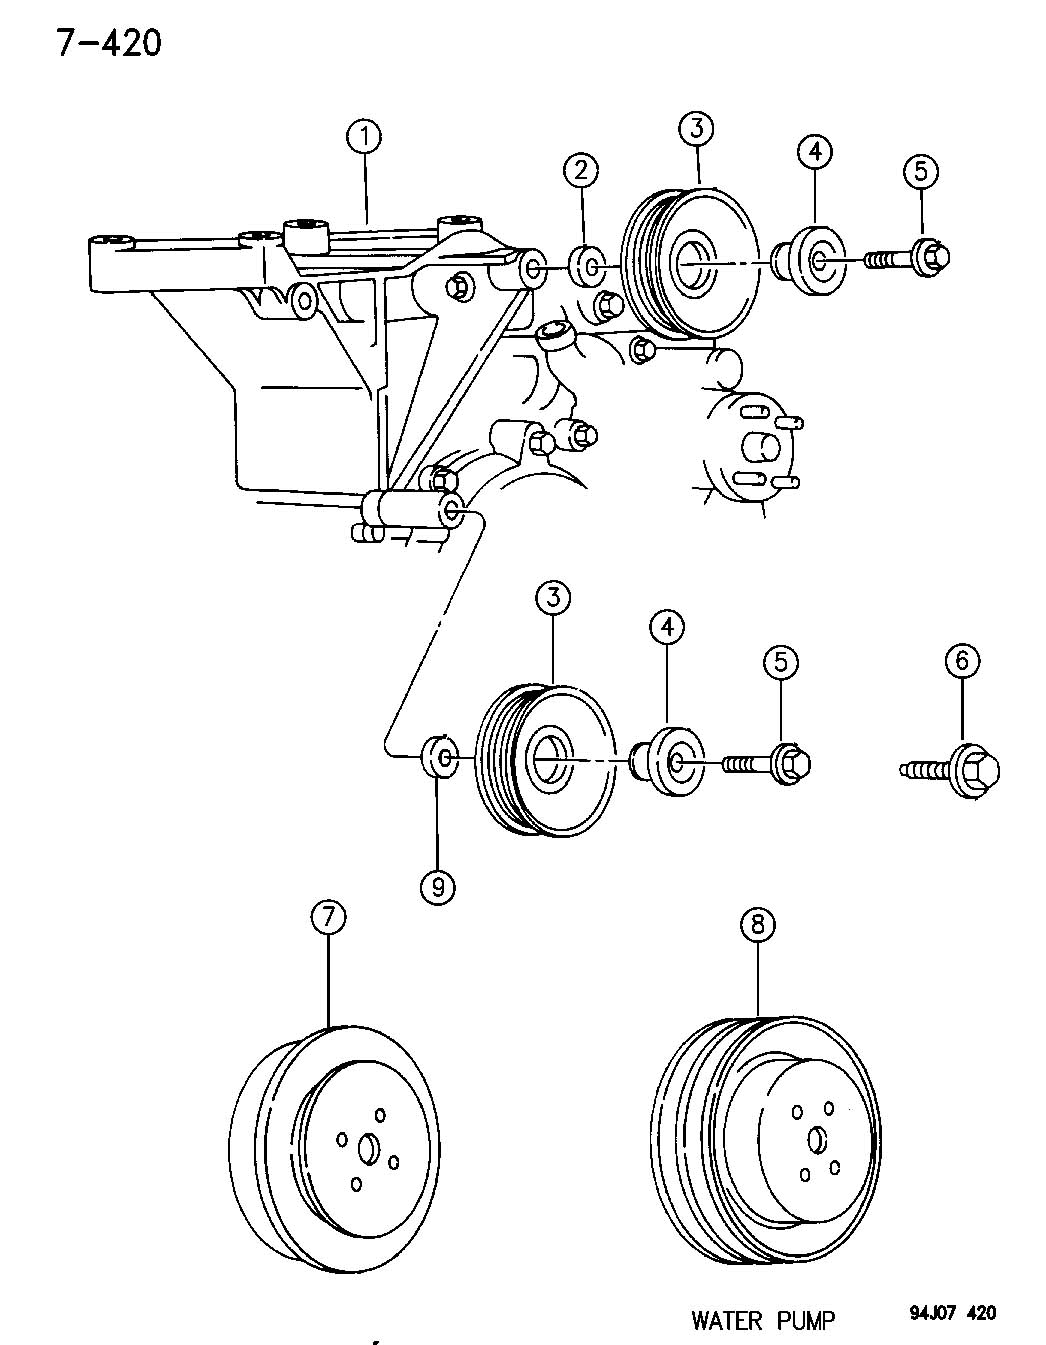 Jeep Wrangler Pulley Pulley Assembly Idler Pulley